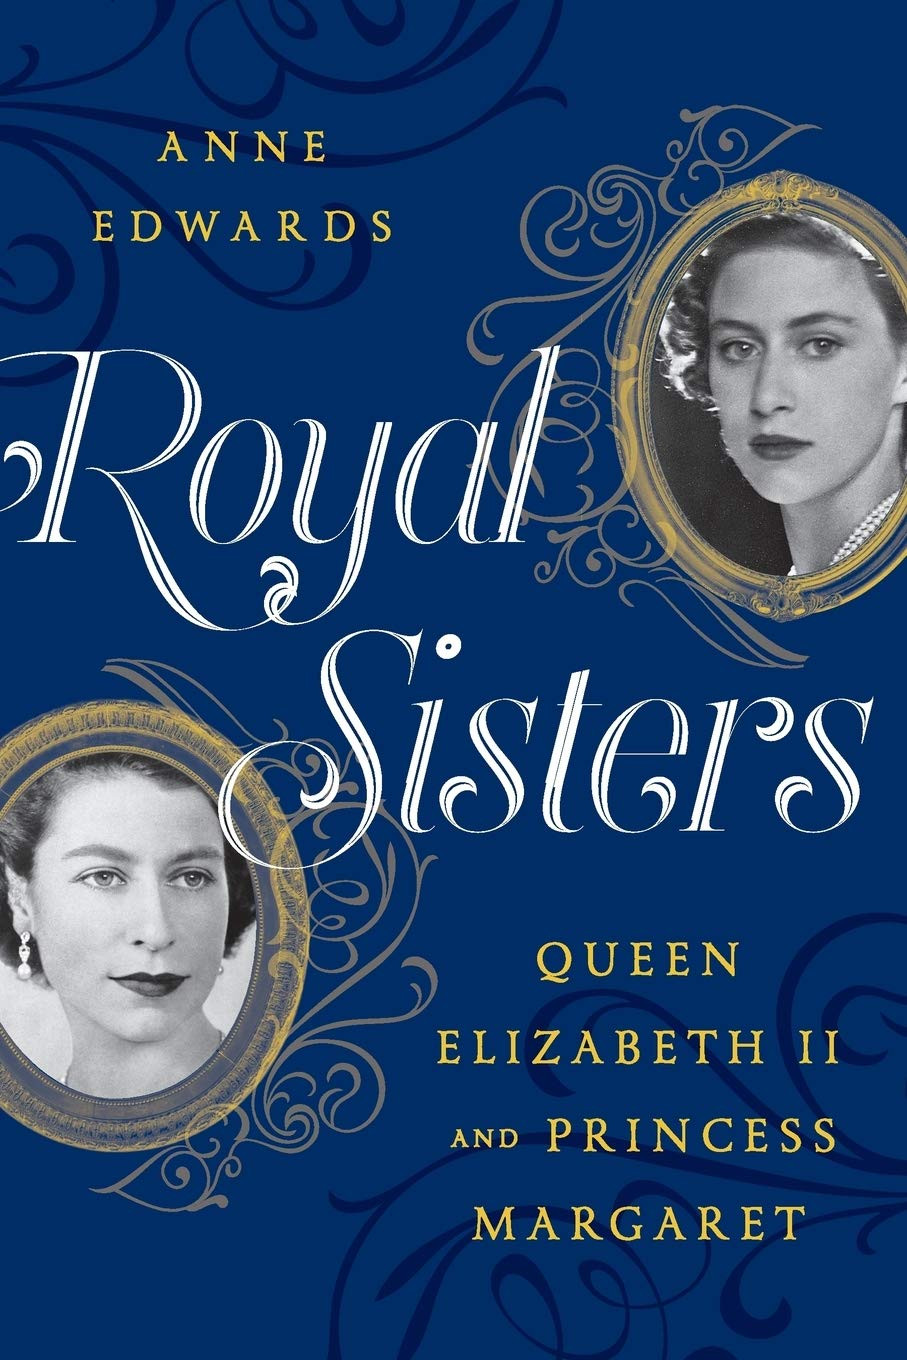 Royal Sisters - Queen Elizabeth II & Princess Margaret book by Anne Edwards